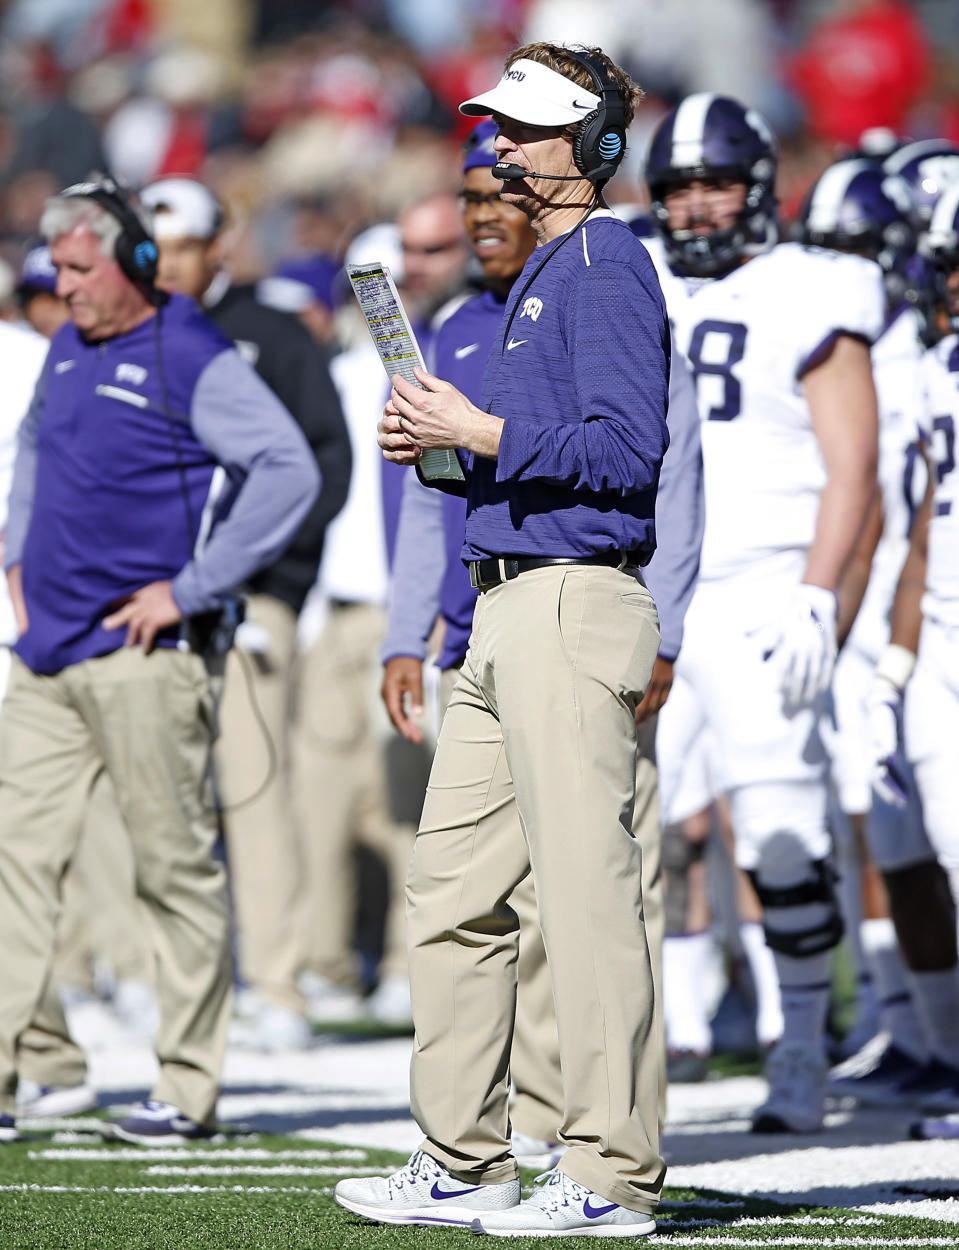 FILE - TCU offensive coordinator Sonny Cumbie waits for the time out during the second half of the NCAA college football game against Texas Tech in Lubbock, Texas, in this Saturday, Nov. 18, 2017, file photo (AP Photo/Brad Tollefson, File)